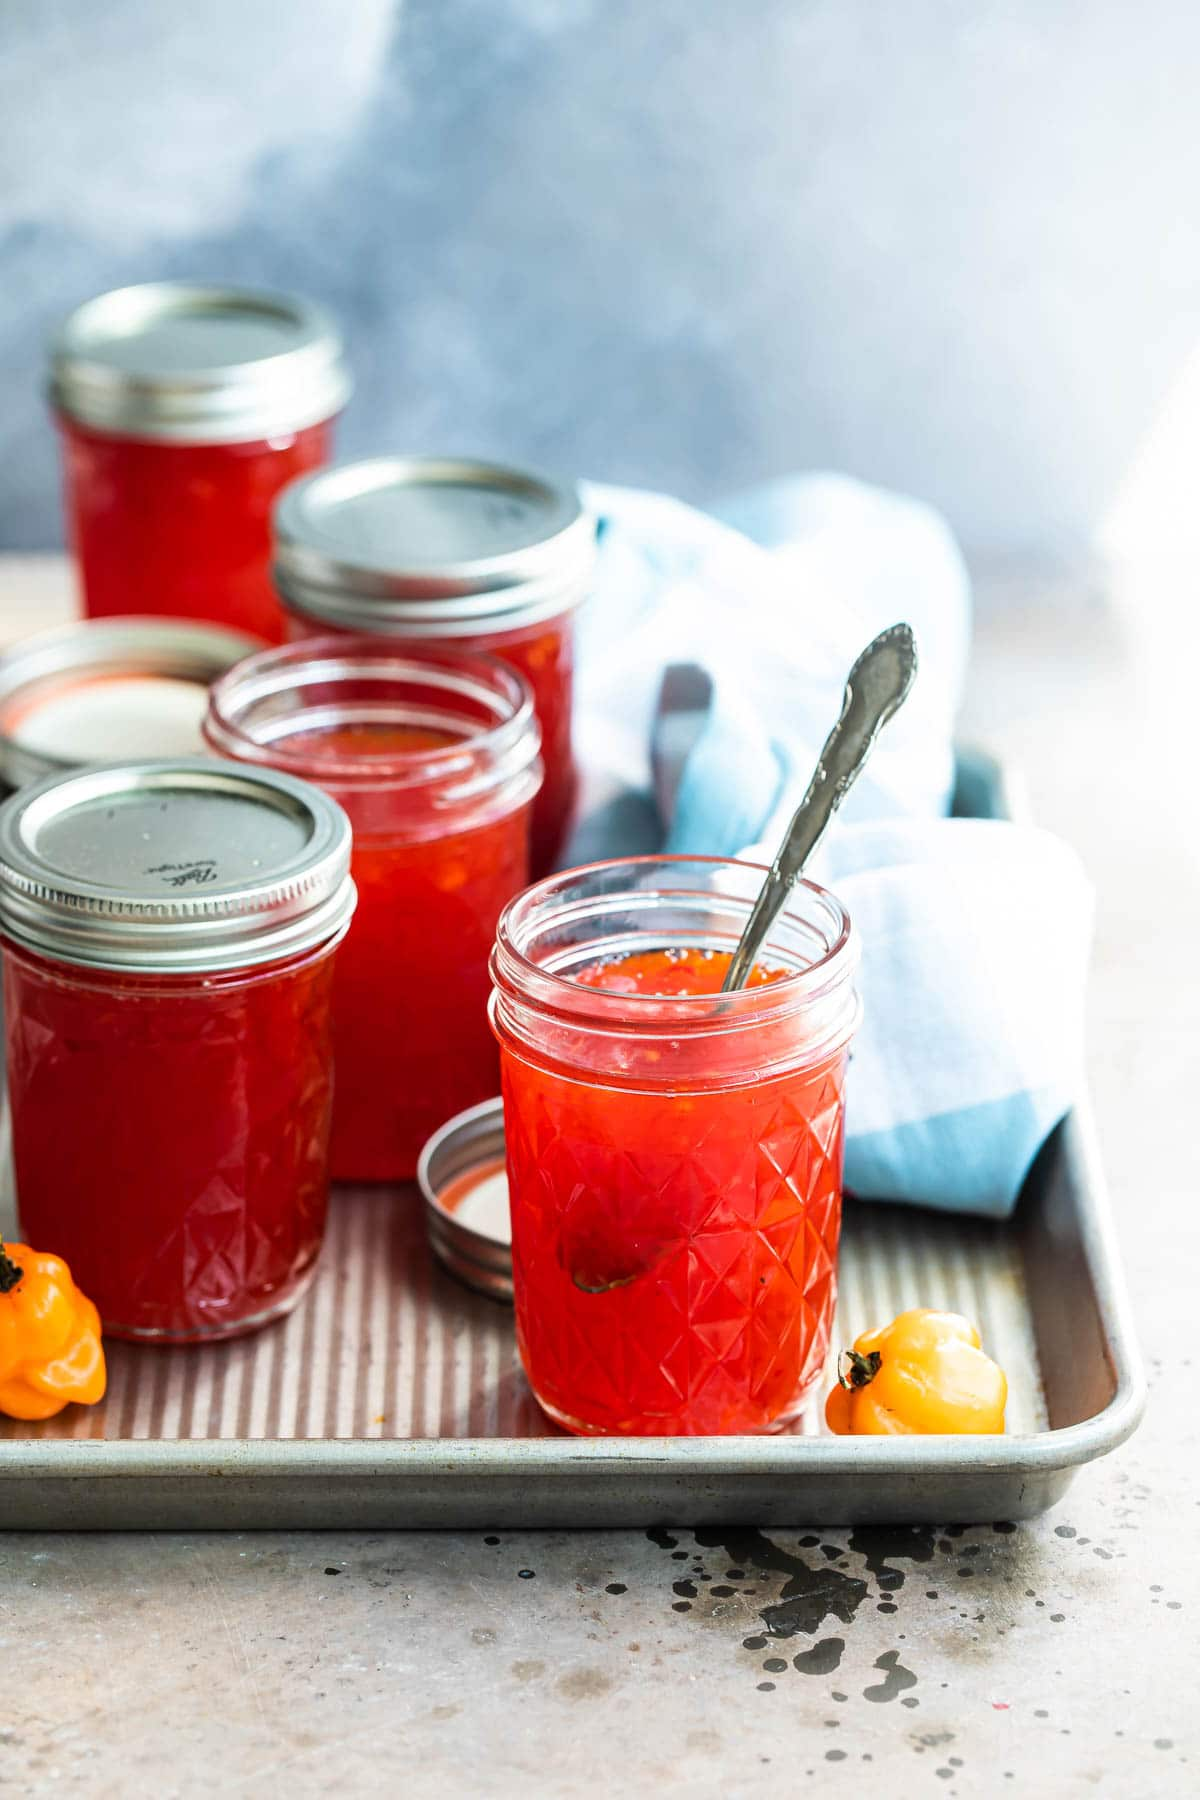 Jars of red pepper jelly on a tray.